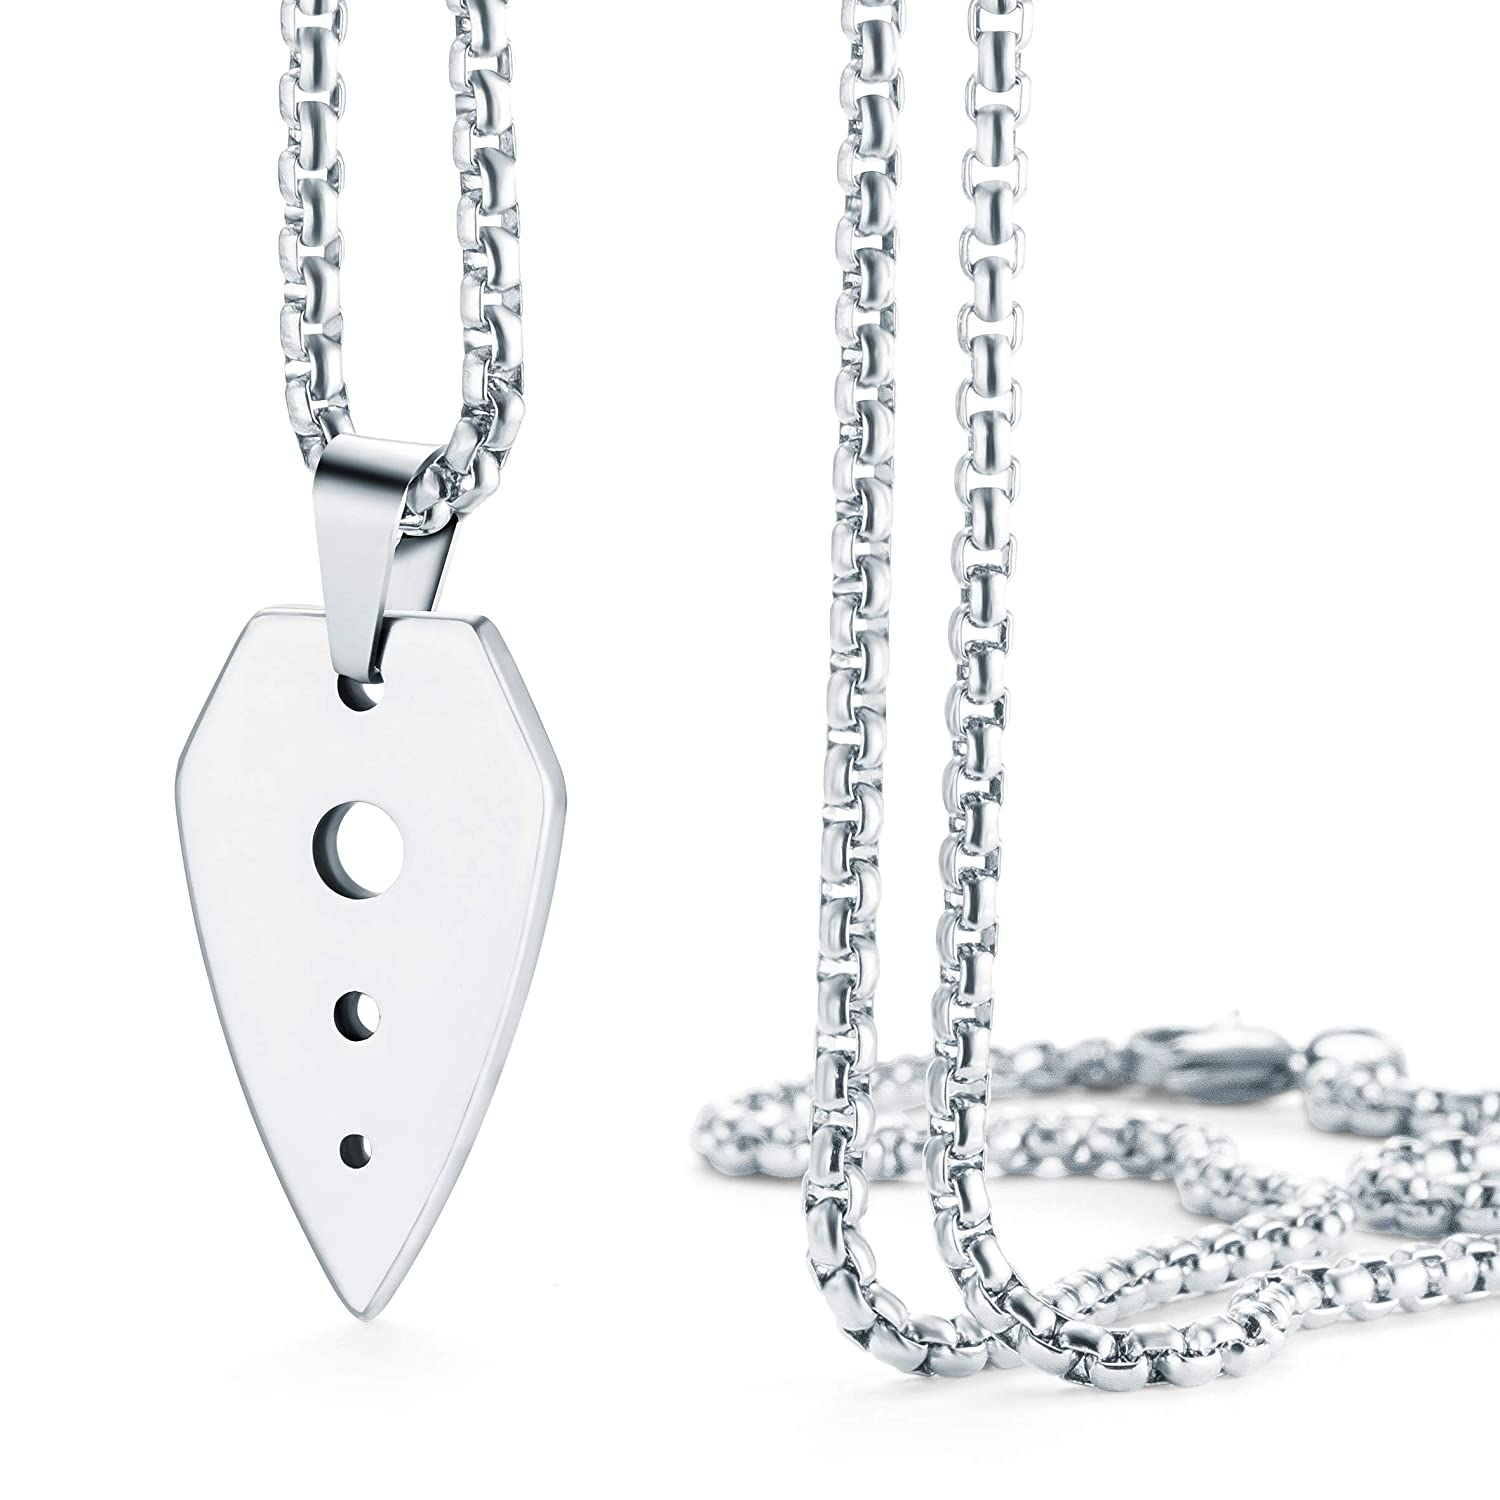 Comes with Chain Necklace Made of Solid Tungsten Material for Him Urban Jewelry Men/'s Pendant Necklace Modern UFO Metal Spear Design in a Polished Silver Finish